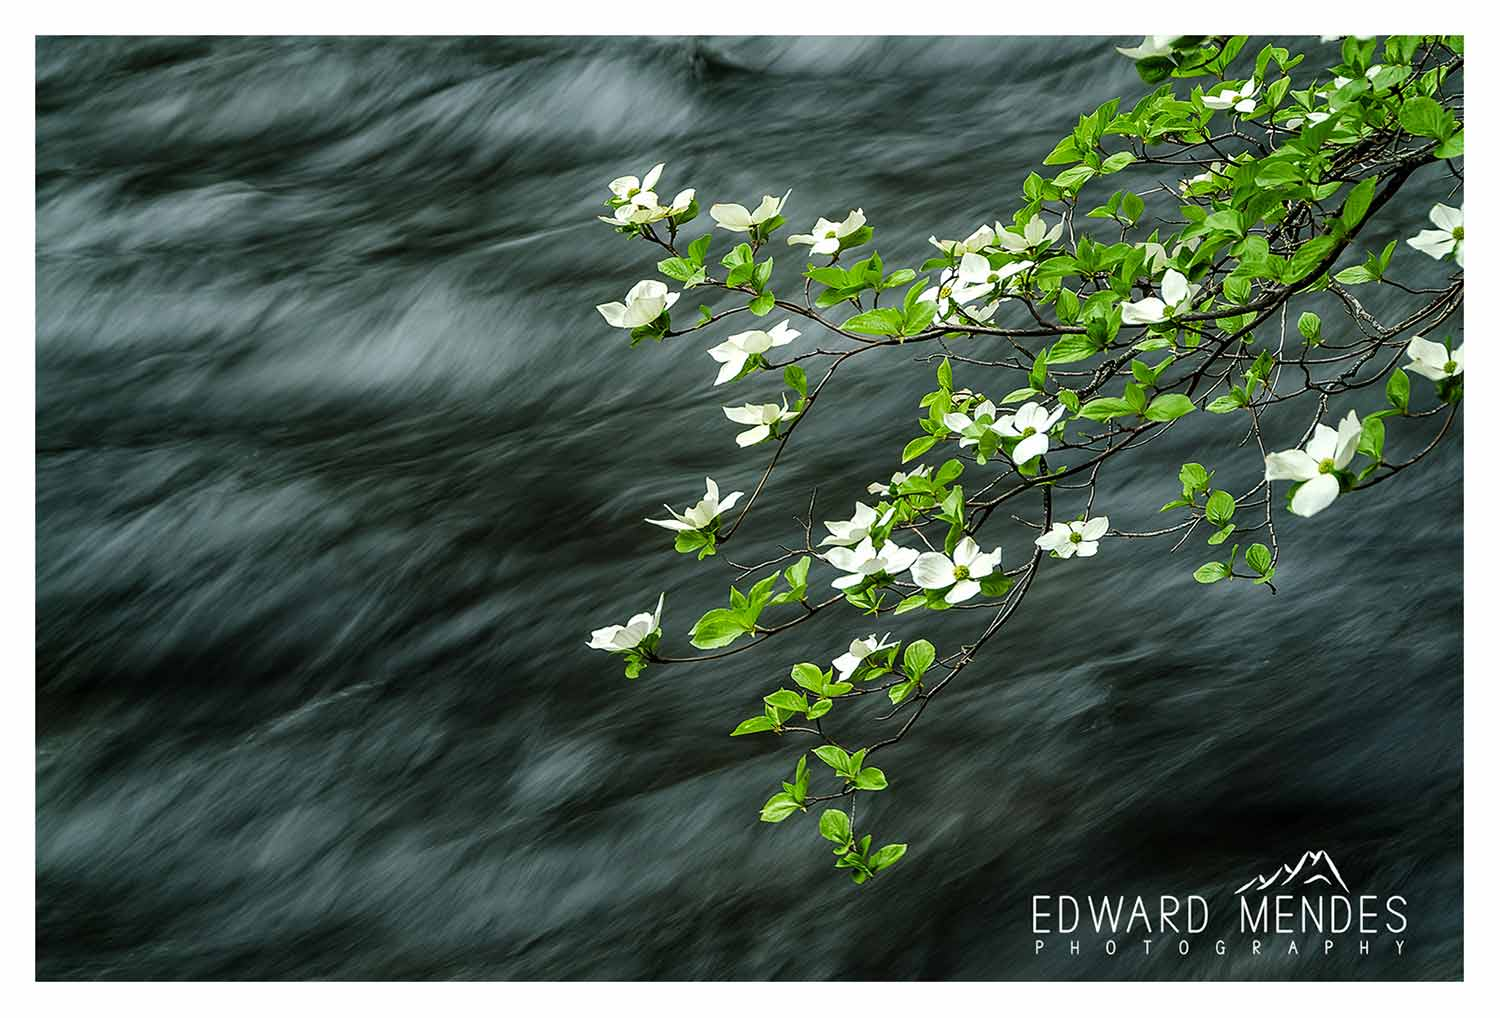 4504_Merced-River-and-Dogwoods_WATERMARKED Image Licensing and Publication